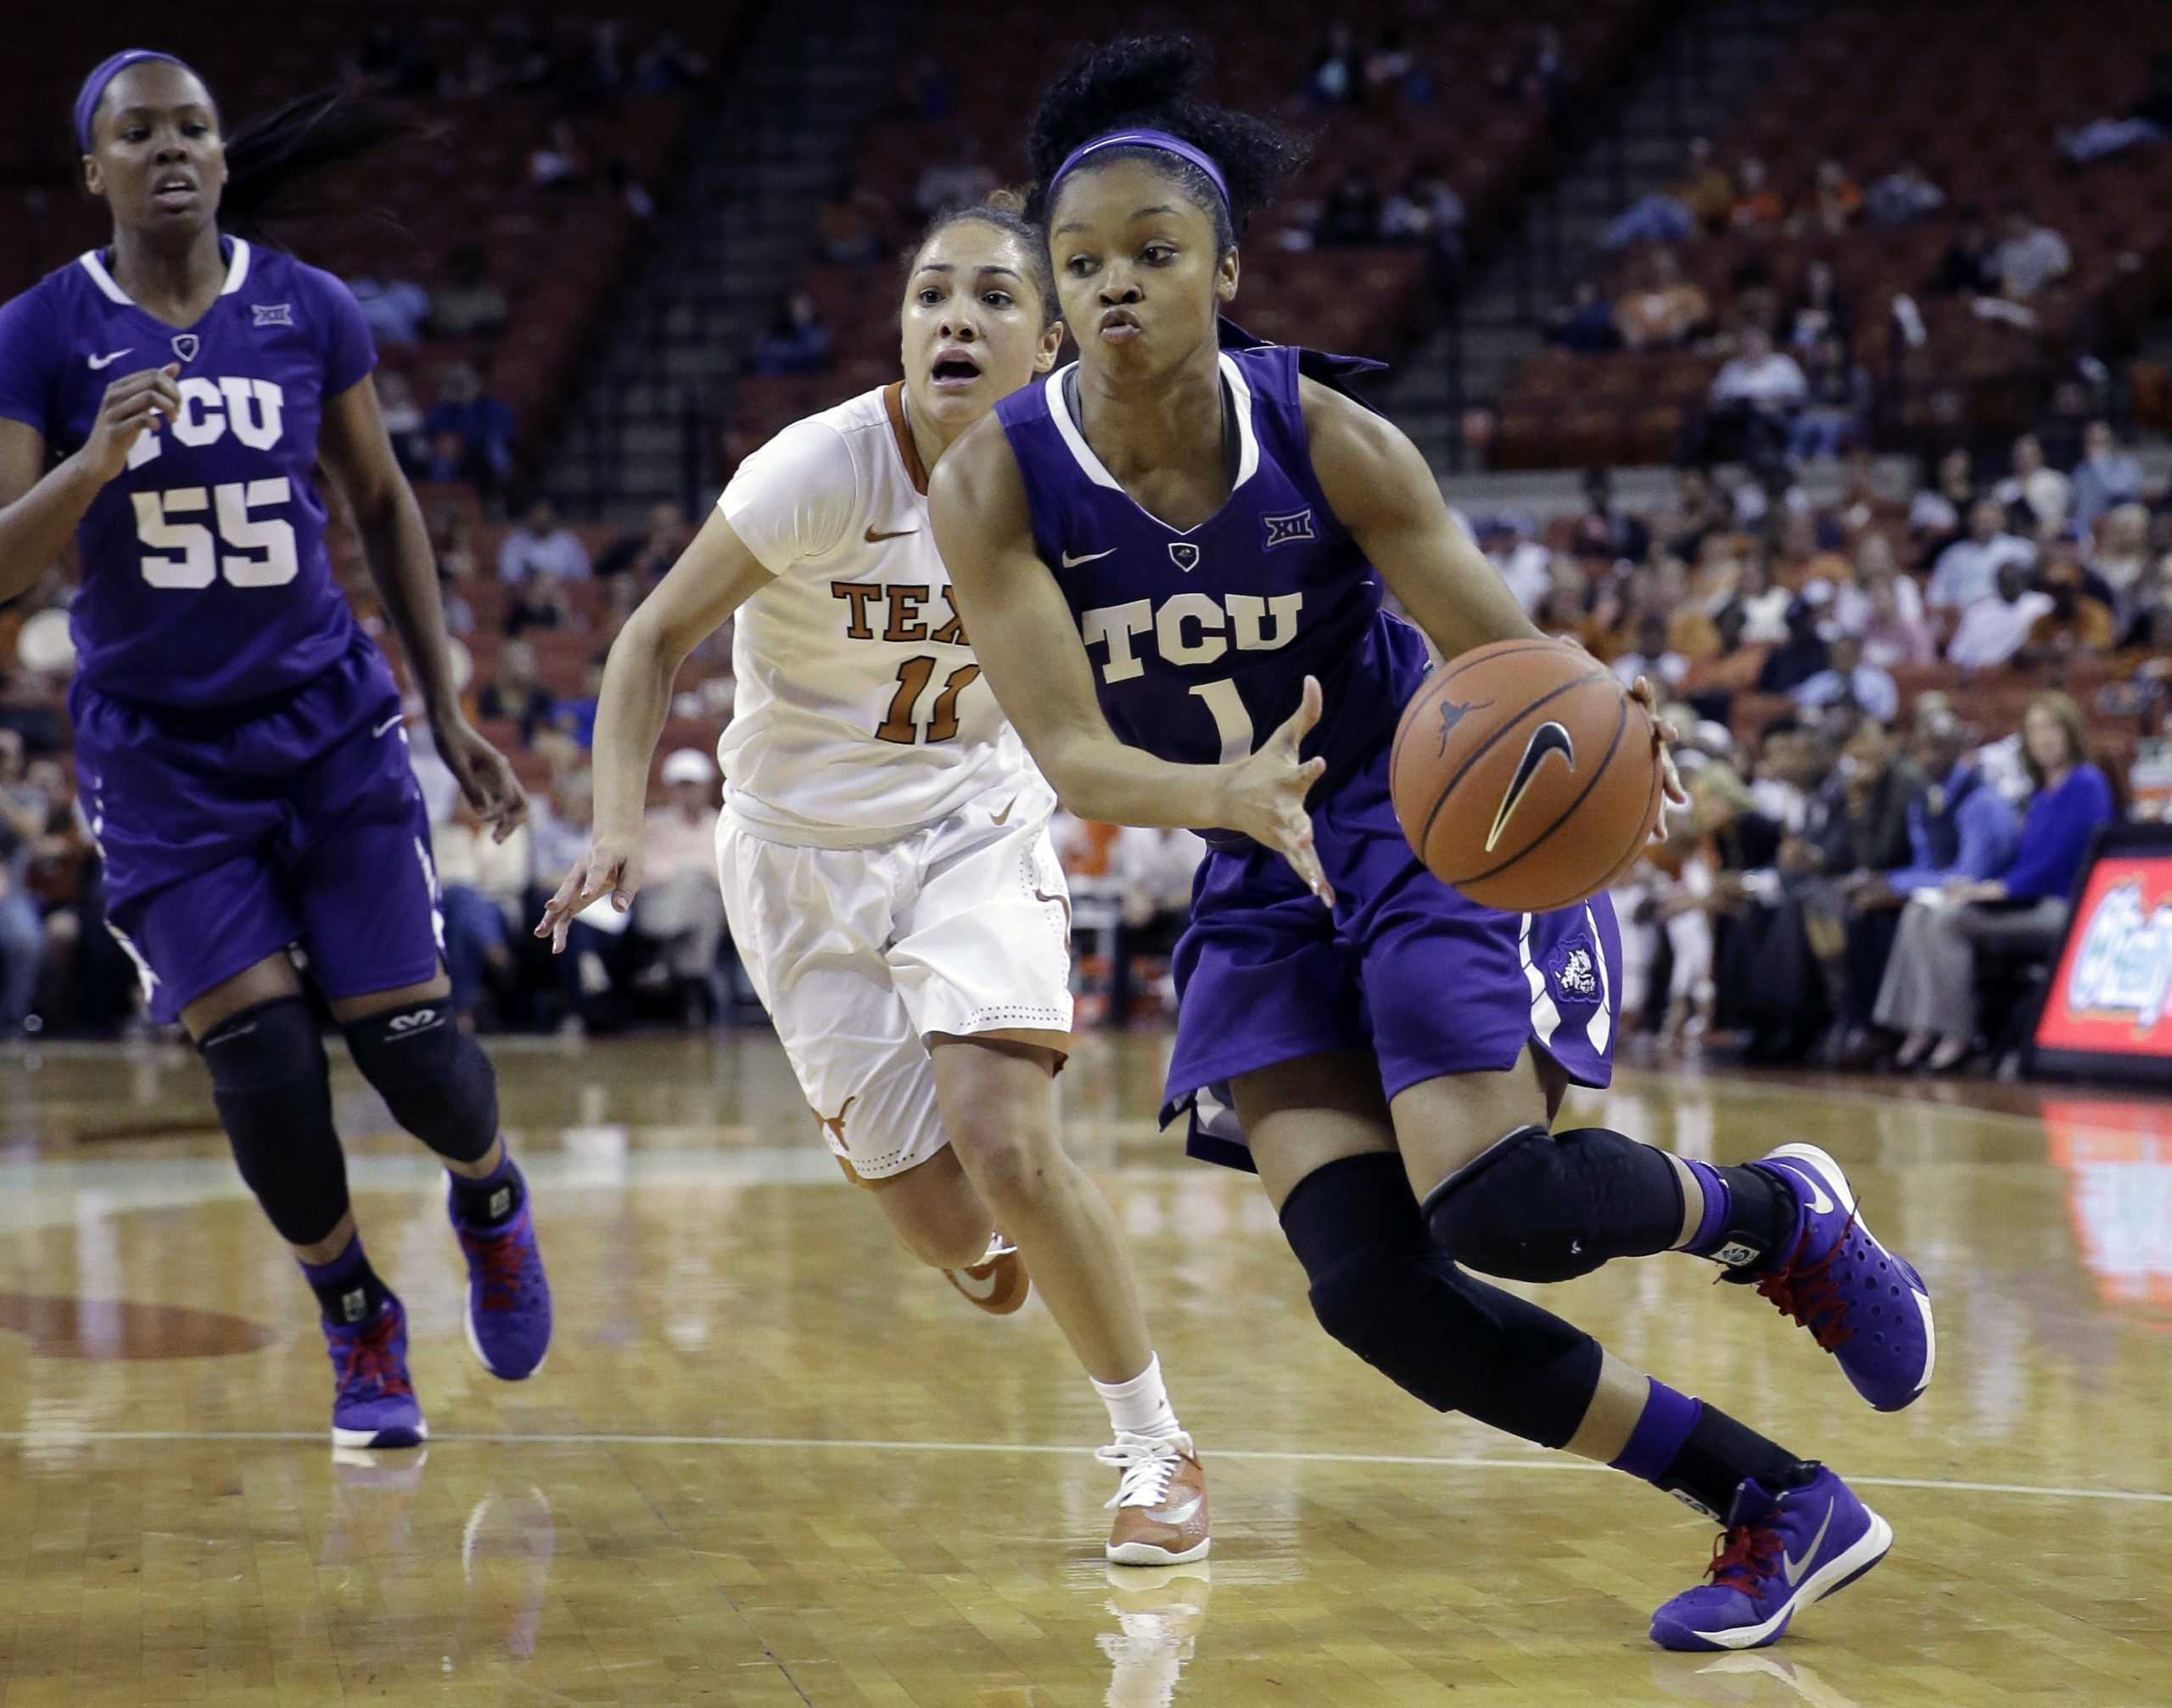 TCU guard Toree Thompson (1) drives around Texas guard Brooke McCarty (11) on Feb. 27 in Austin.